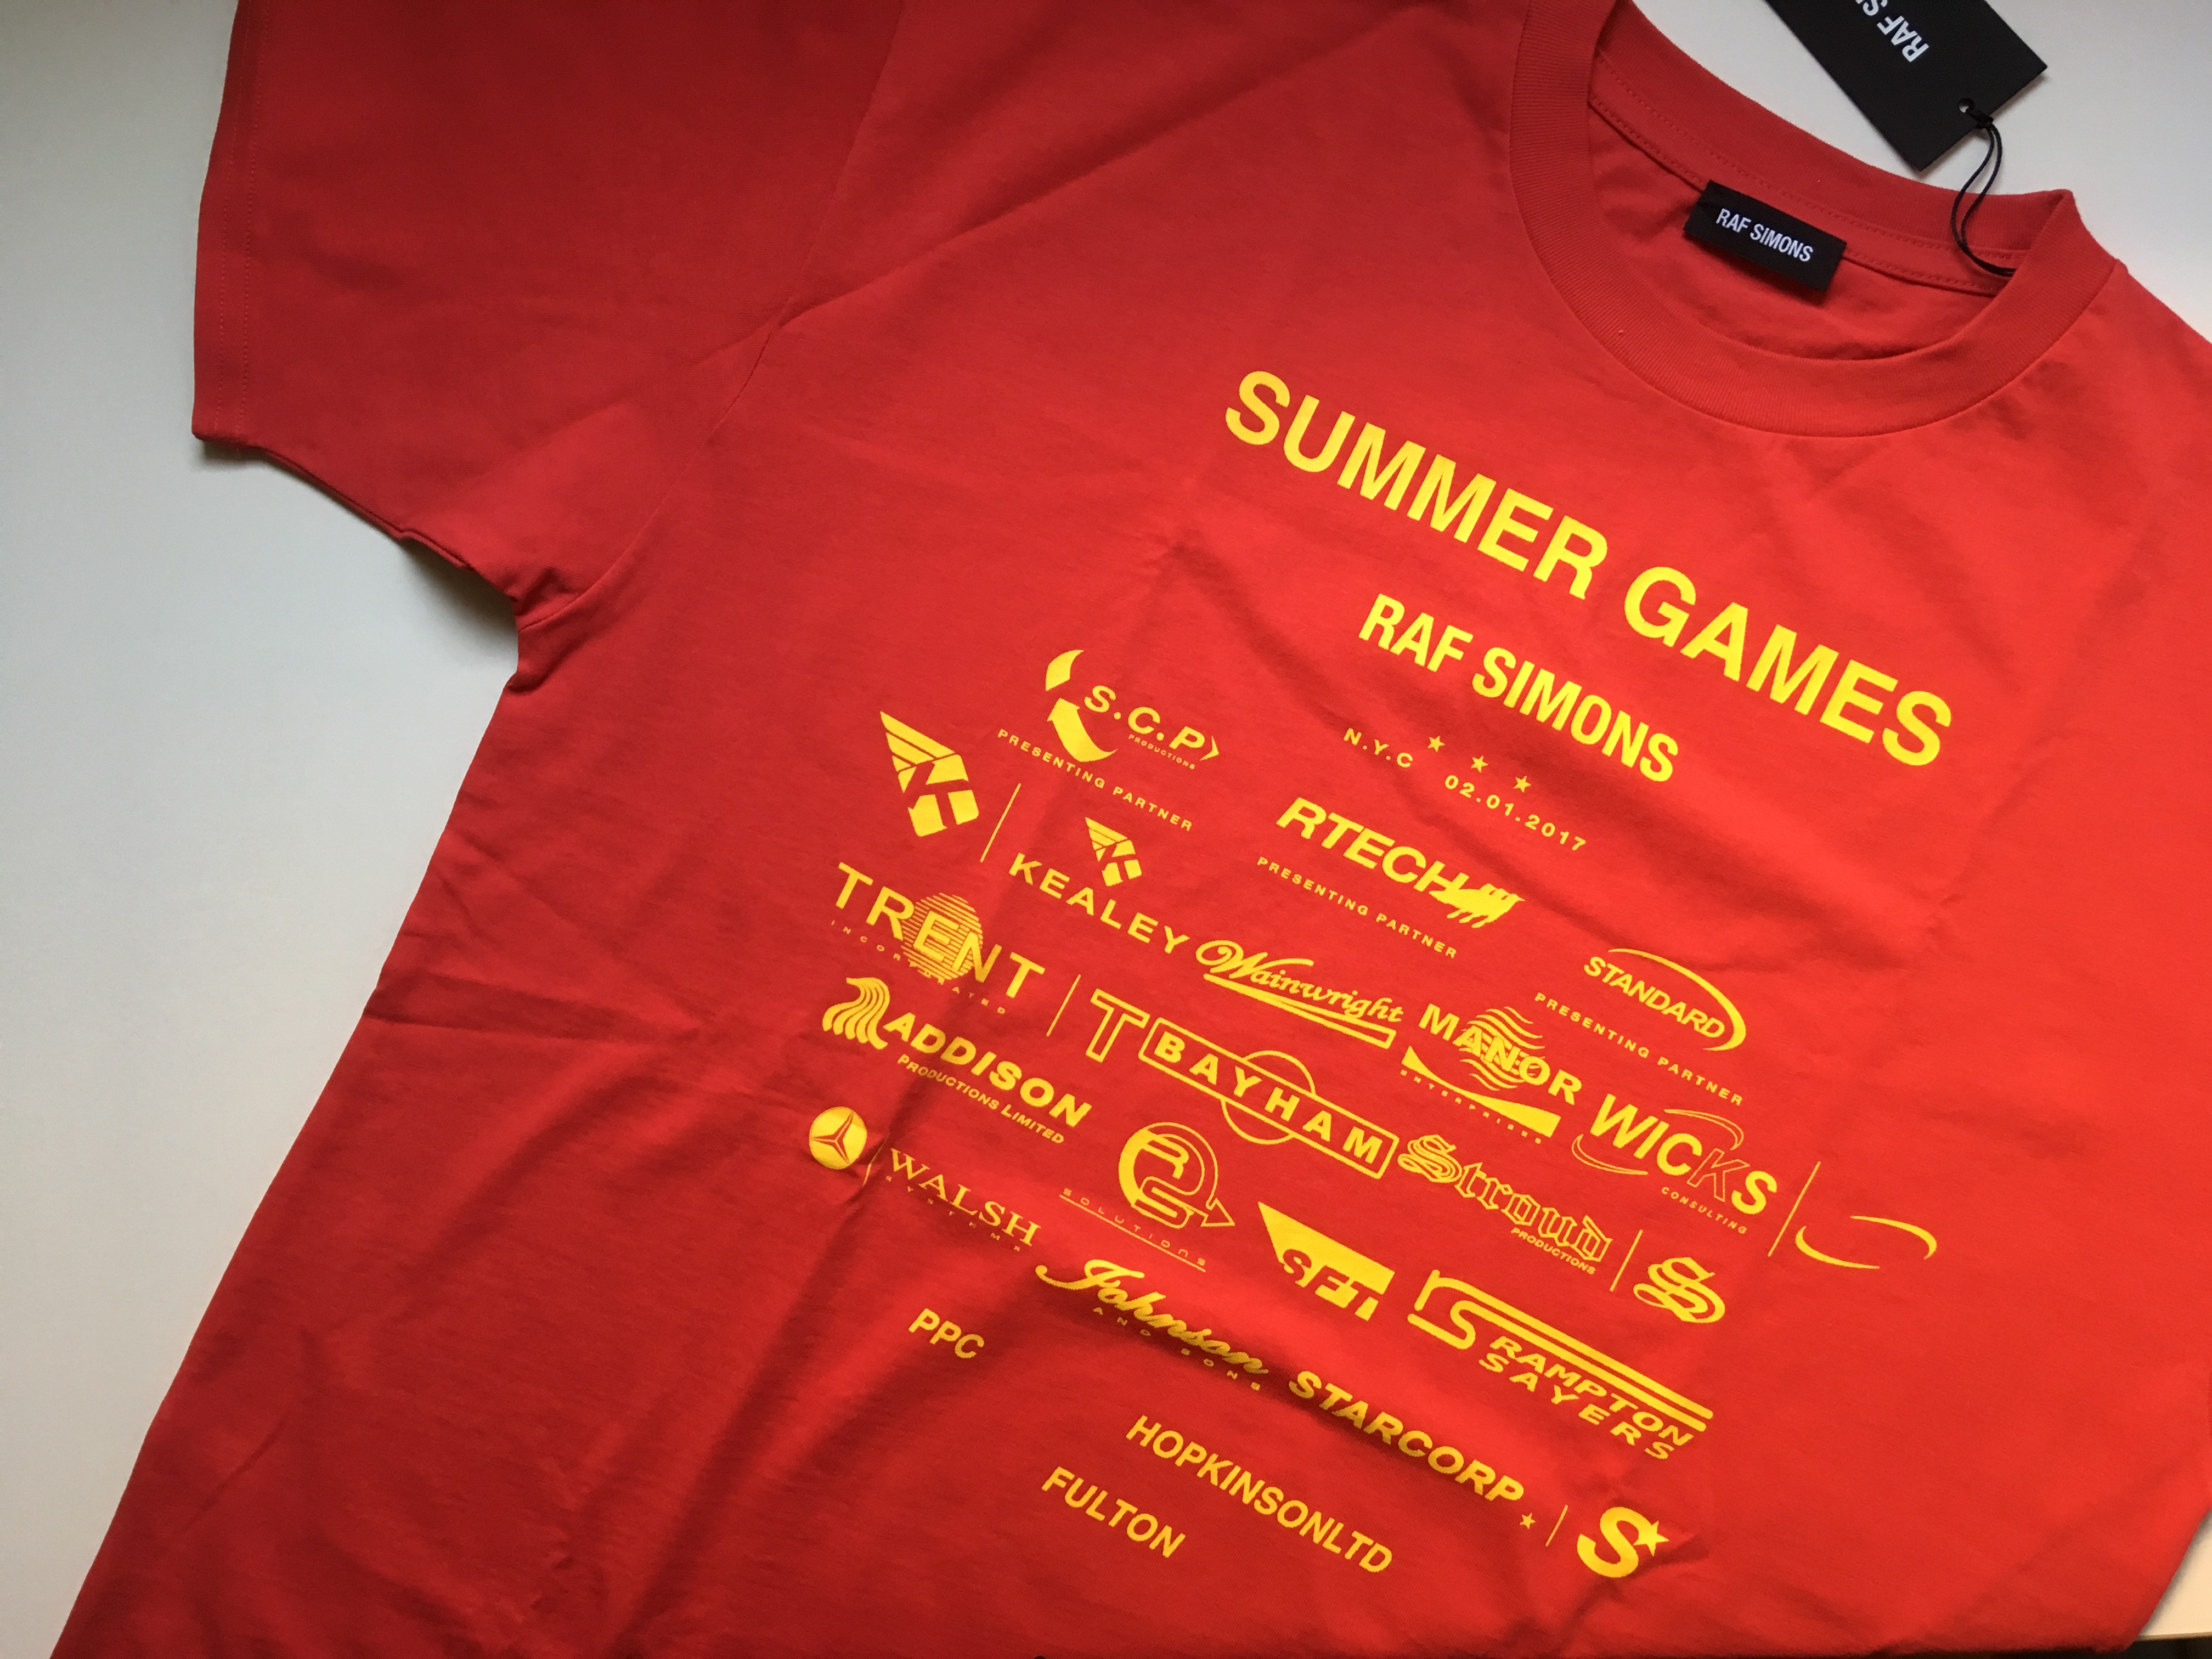 d0eb22c0f63 Raf Simons Summer Games T shirts Size m - Short Sleeve T-Shirts for Sale -  Grailed